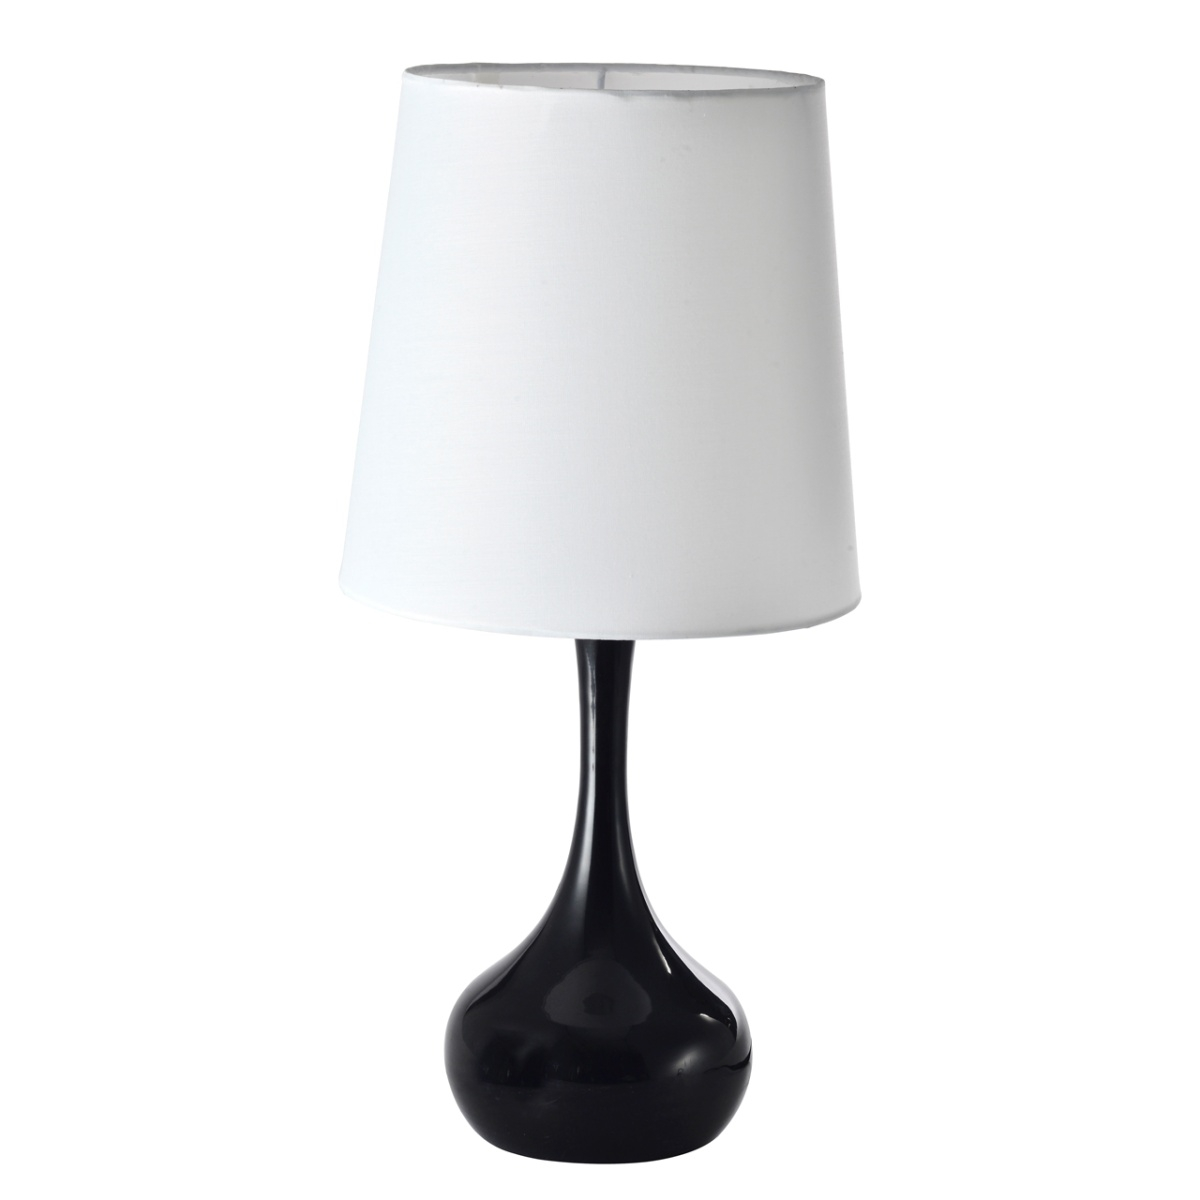 Lampa de birou MW-Light Elegance Salon 415033601 imagine